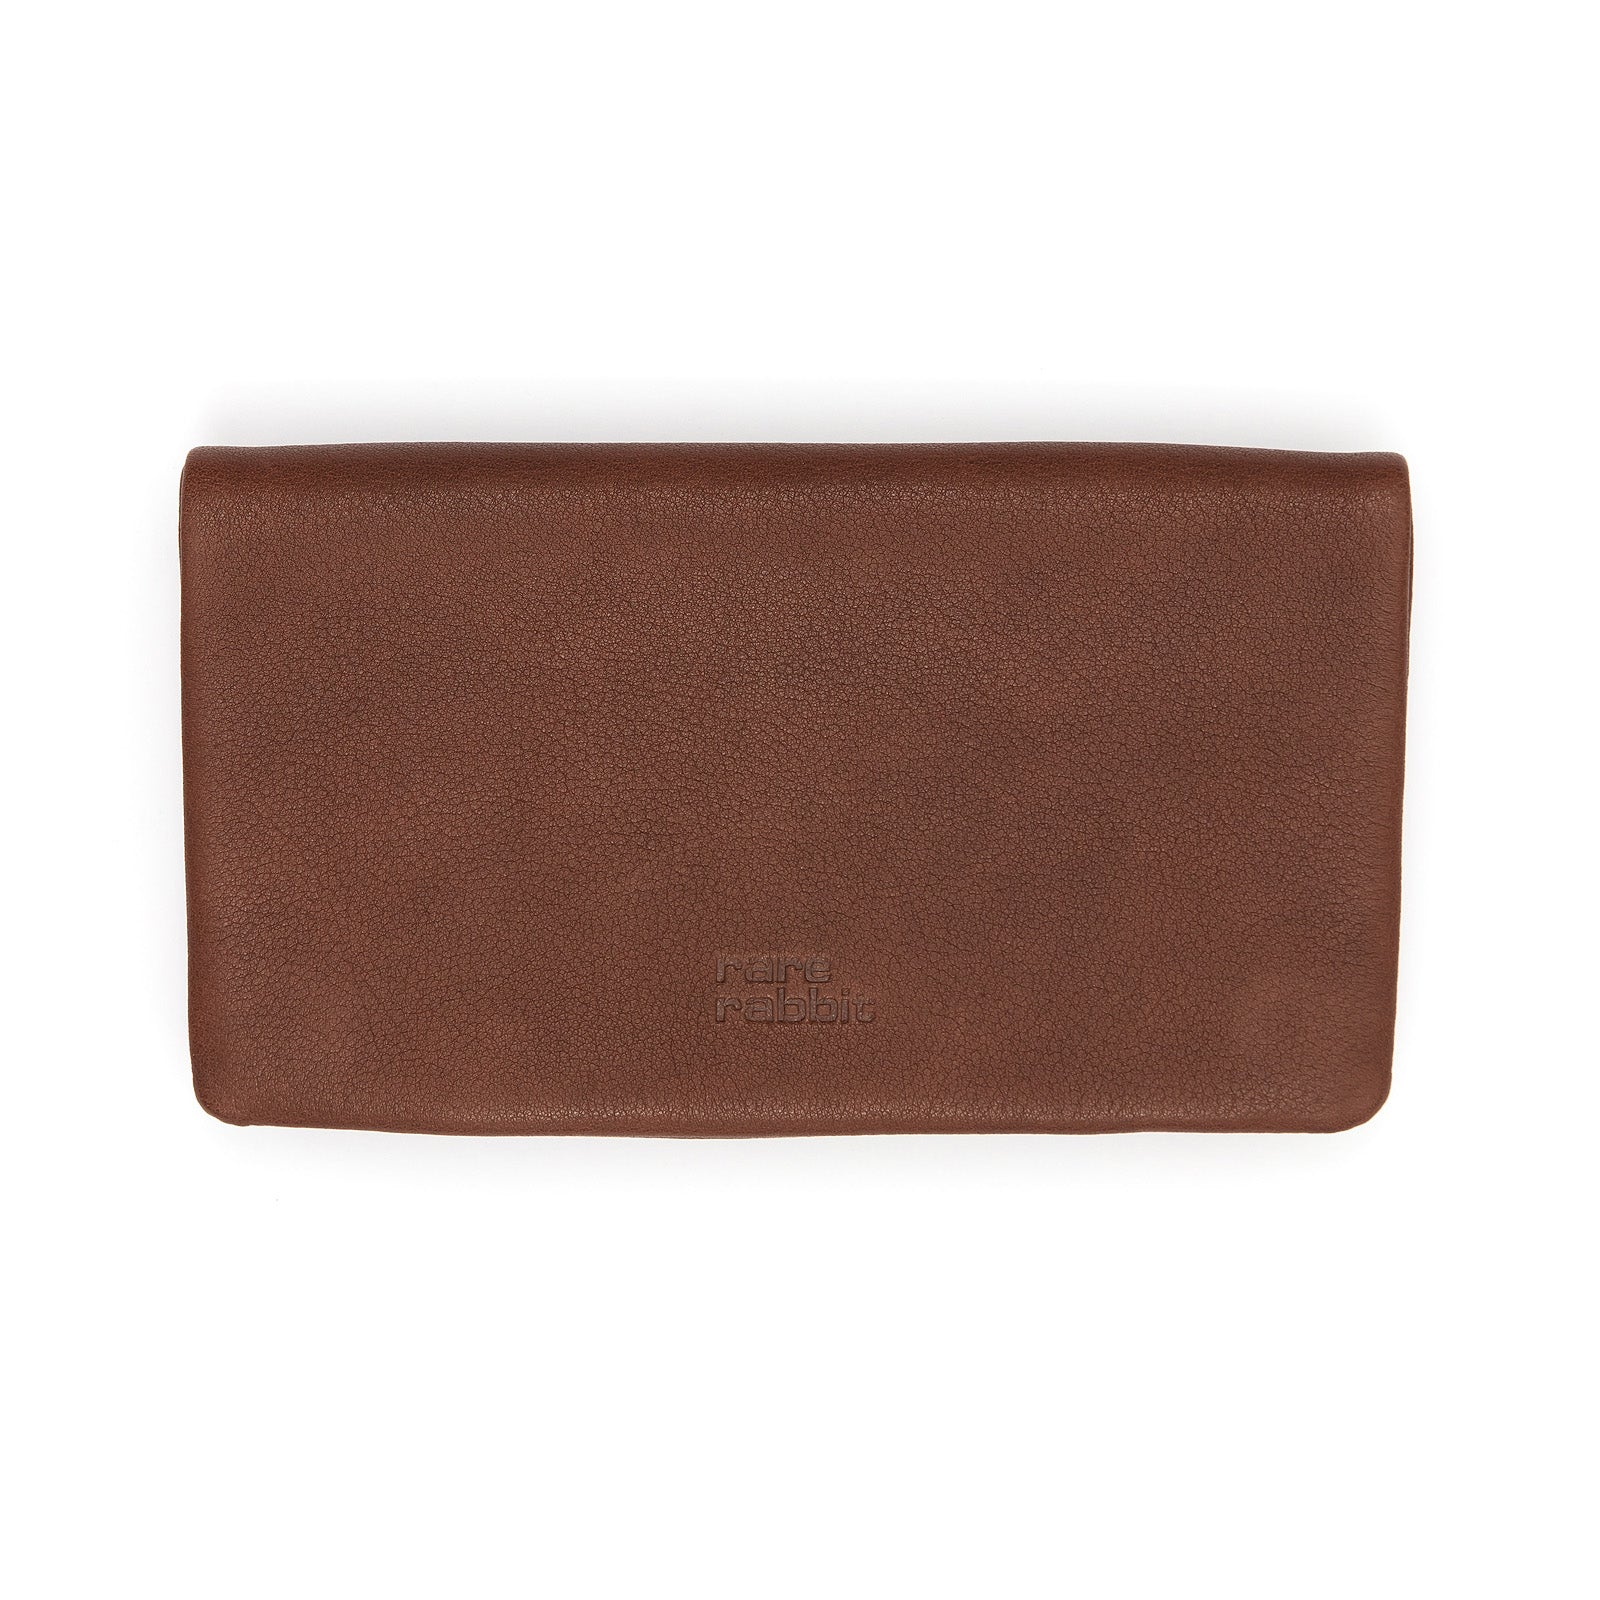 Voyager leather large wallet